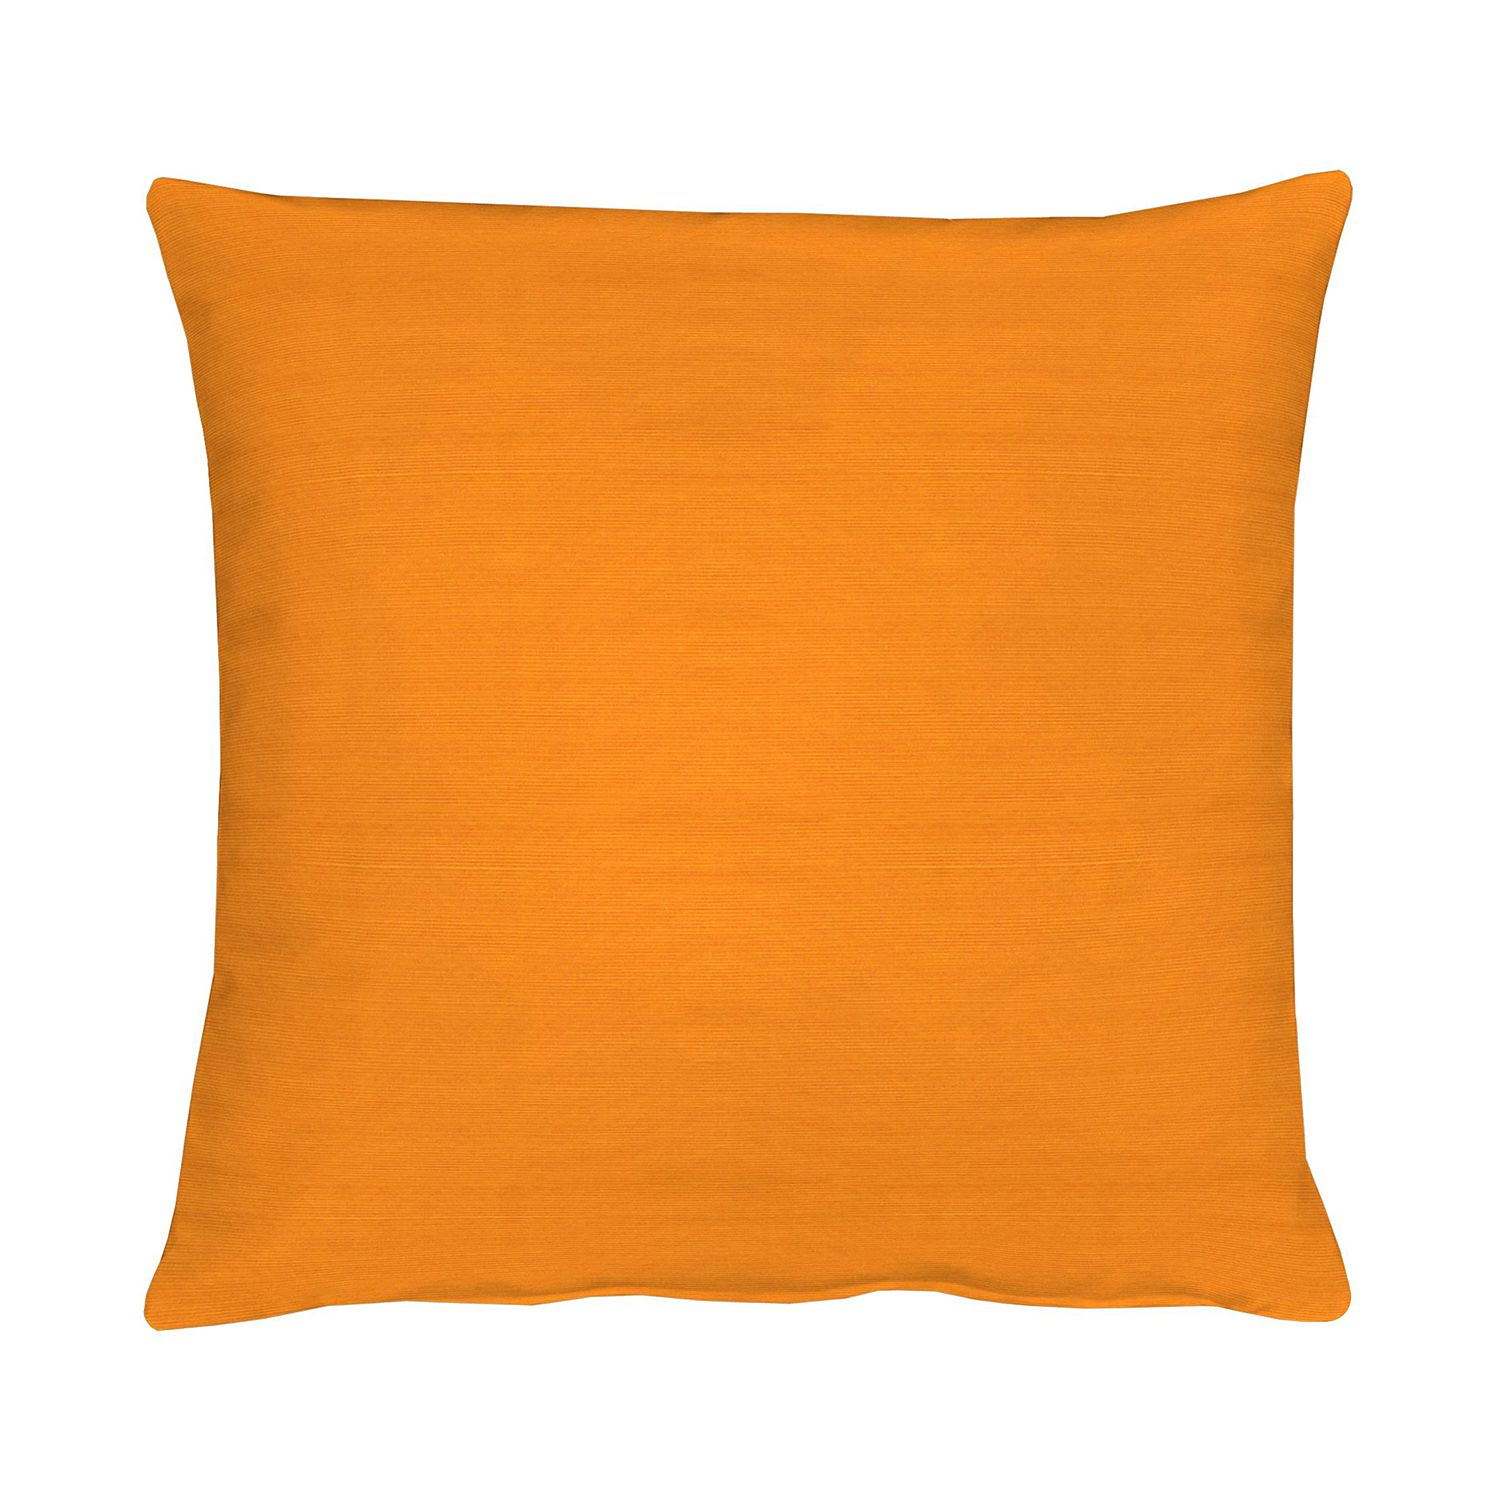 Home 24 - Coussin kanada - orange - 48 x 48 cm, apelt